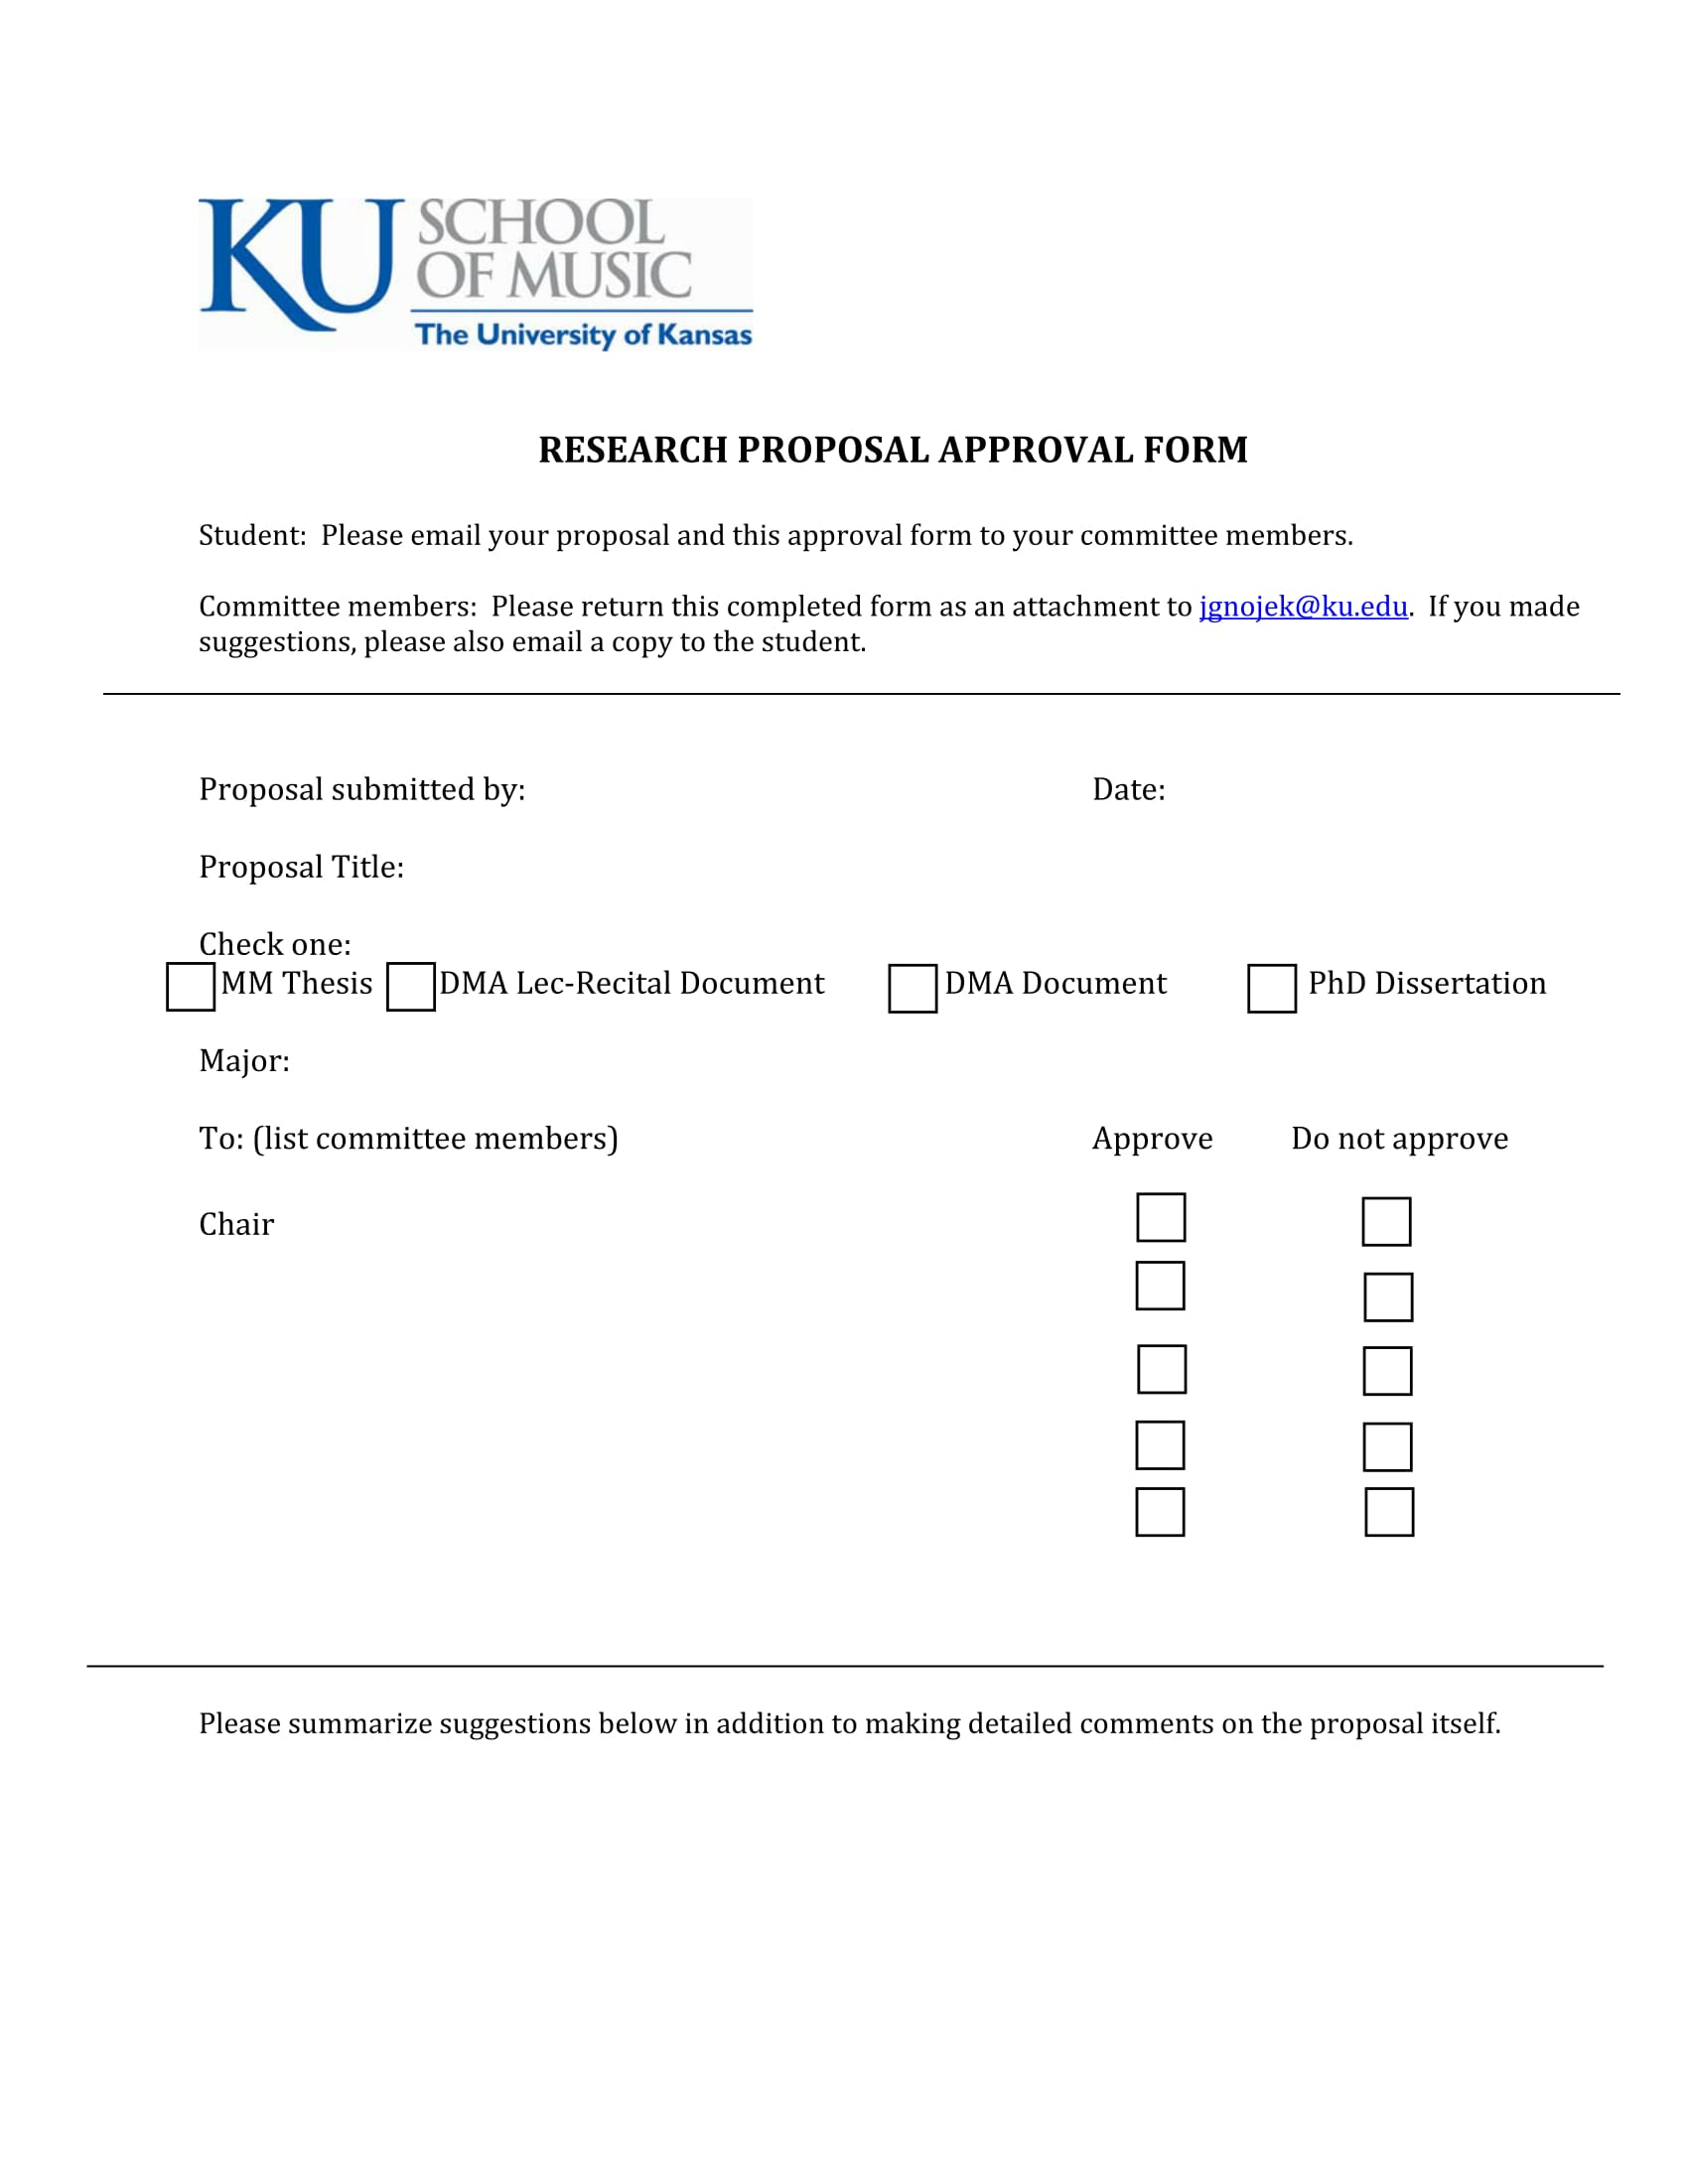 Dissertation approval form